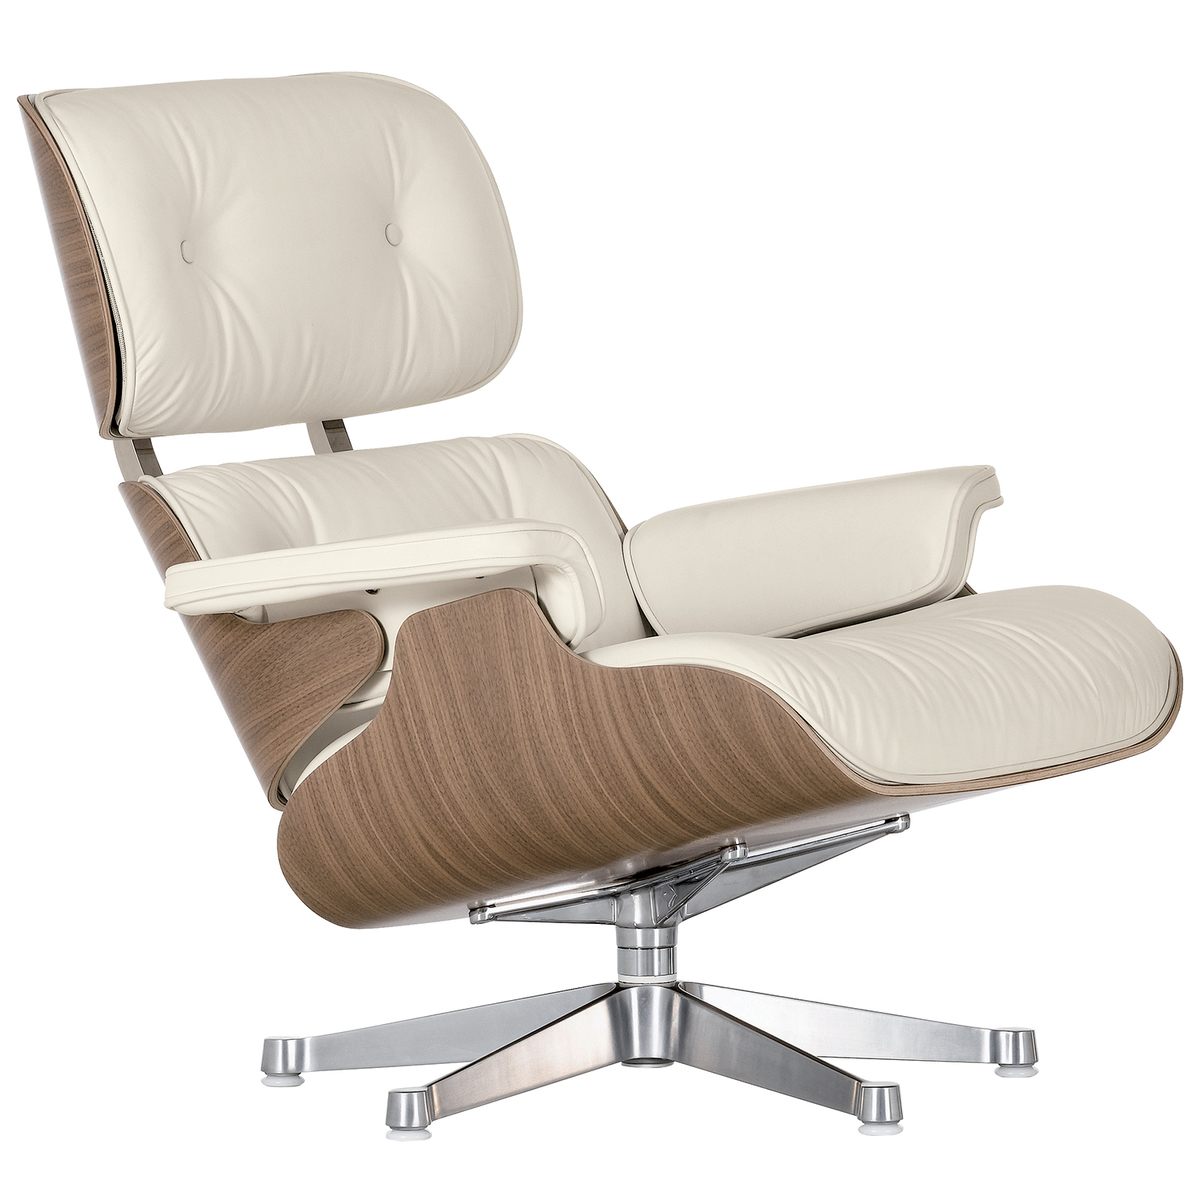 Vitra Eames Lounge Chair Clic Size